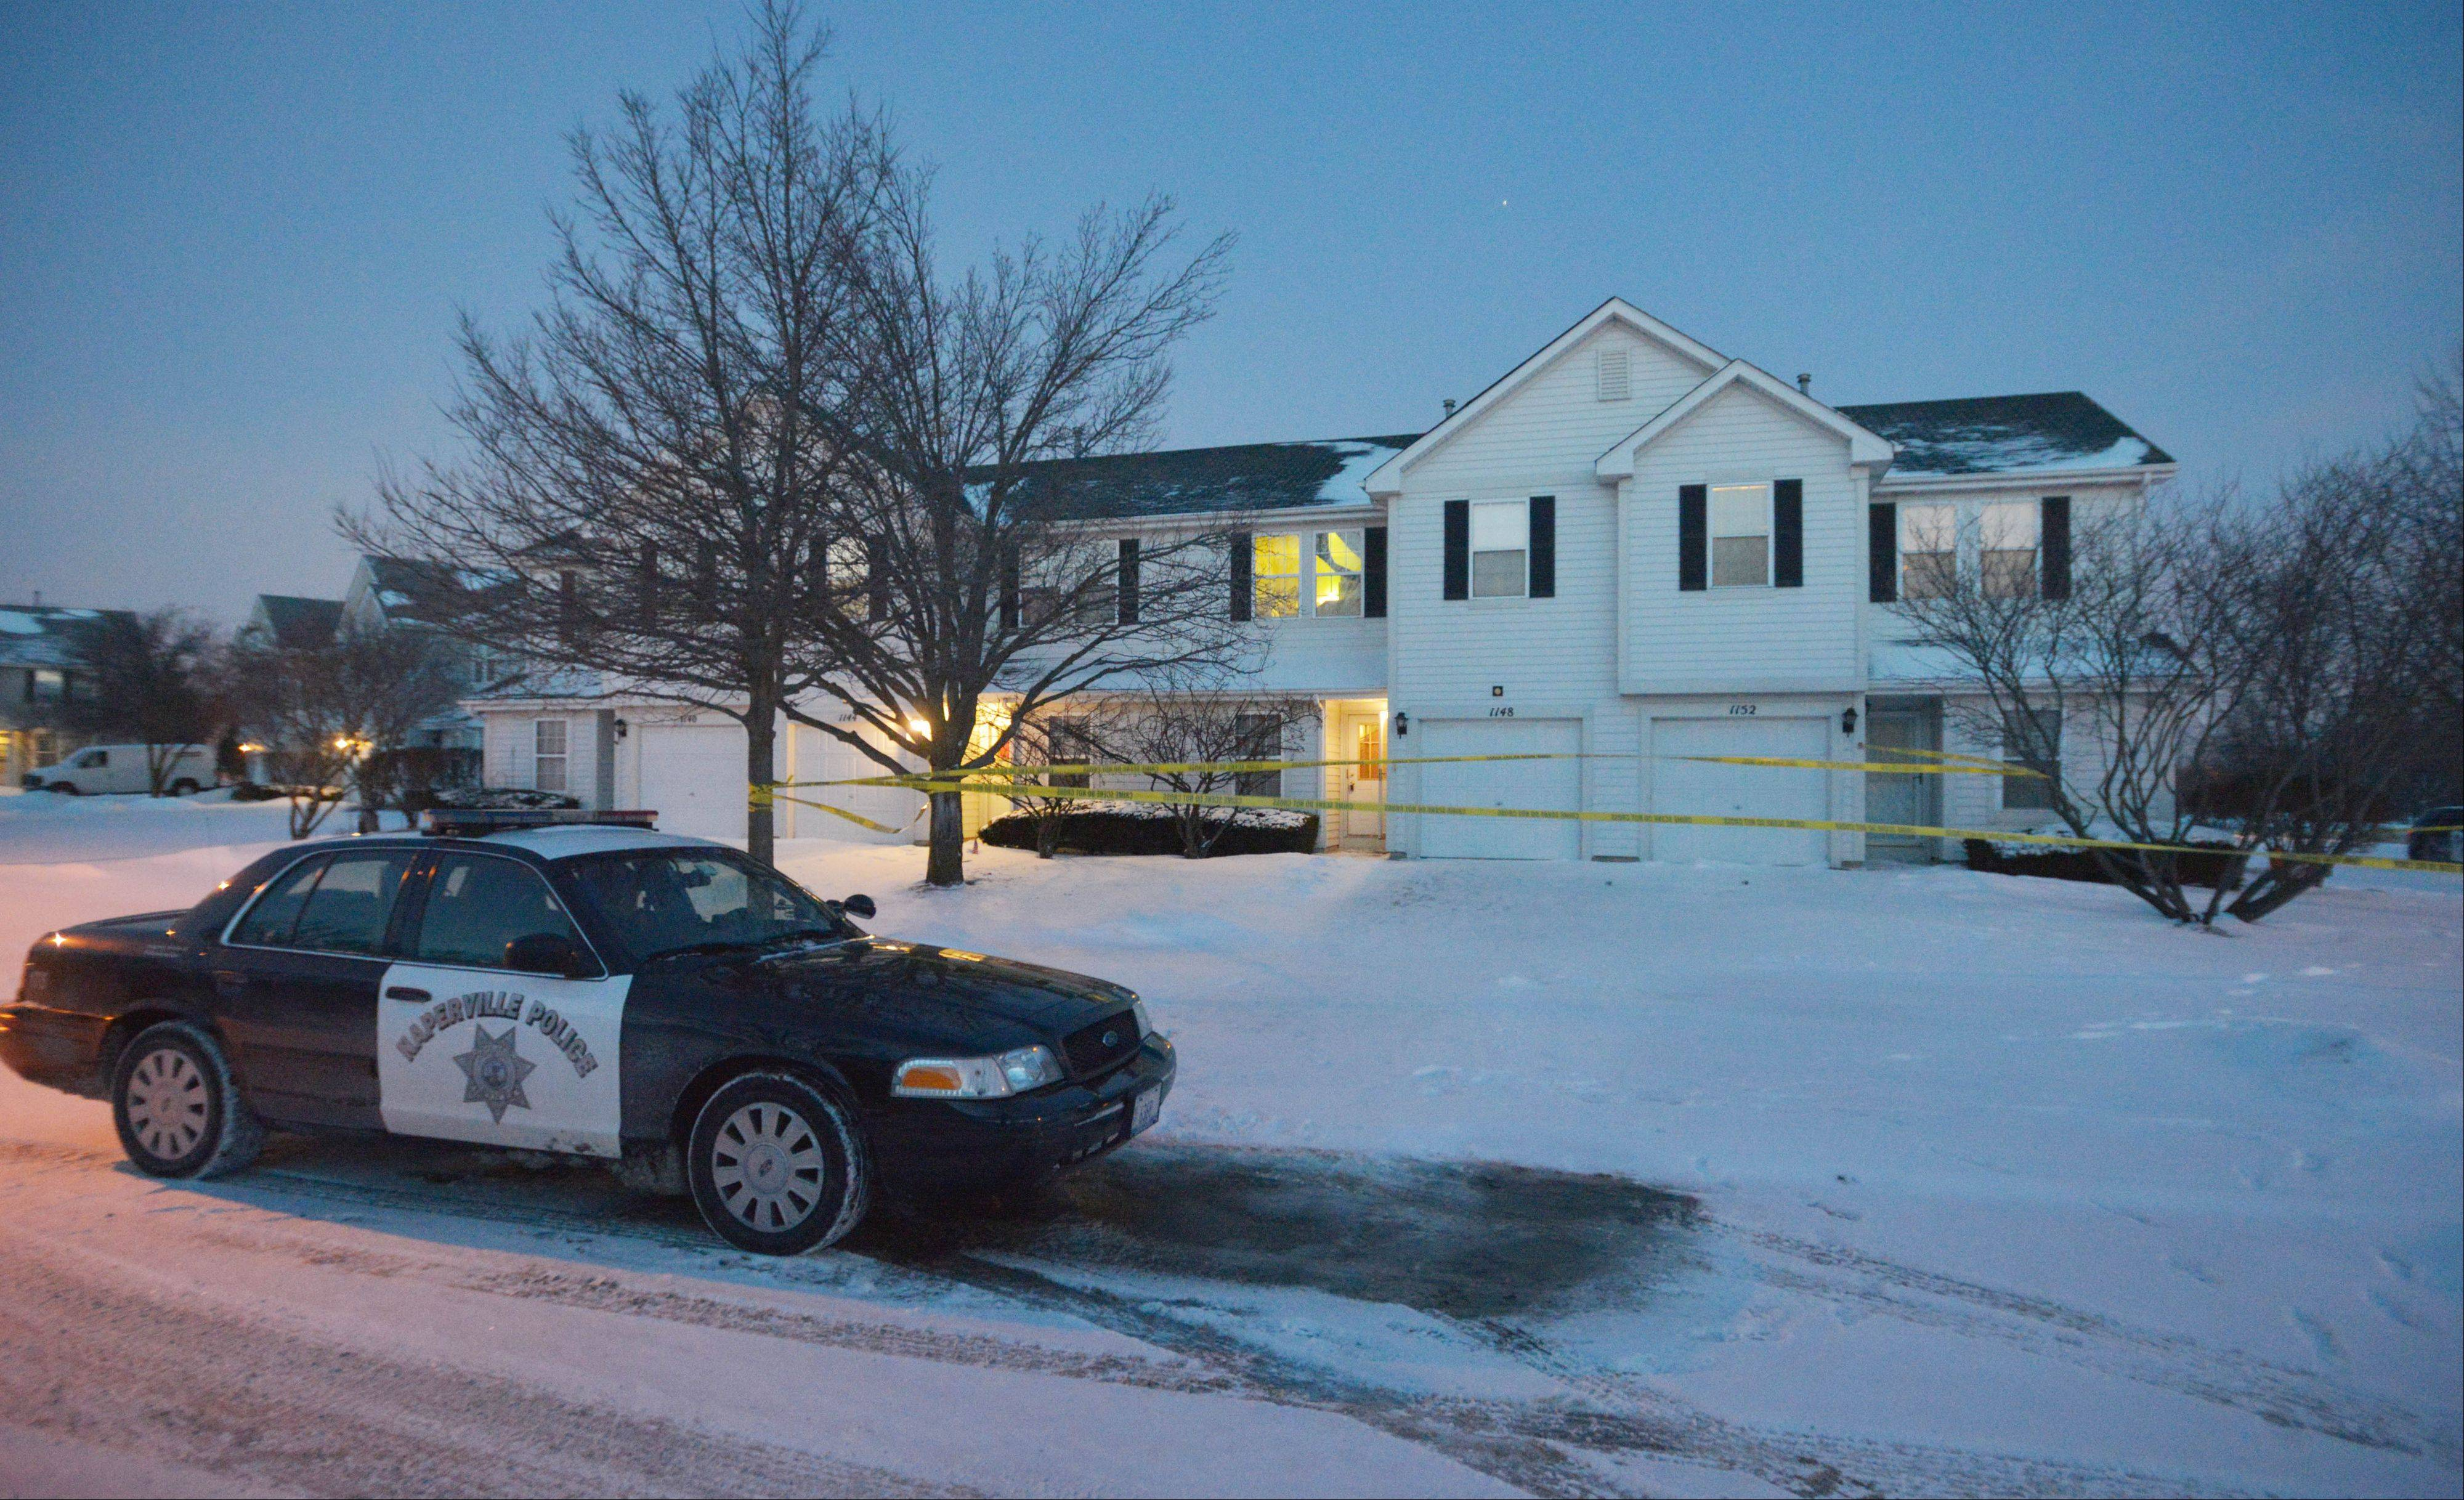 A Naperville police car idles in front of a two-story framed home on Vail Court in Naperville early Wednesday evening. A death was under investigation there.